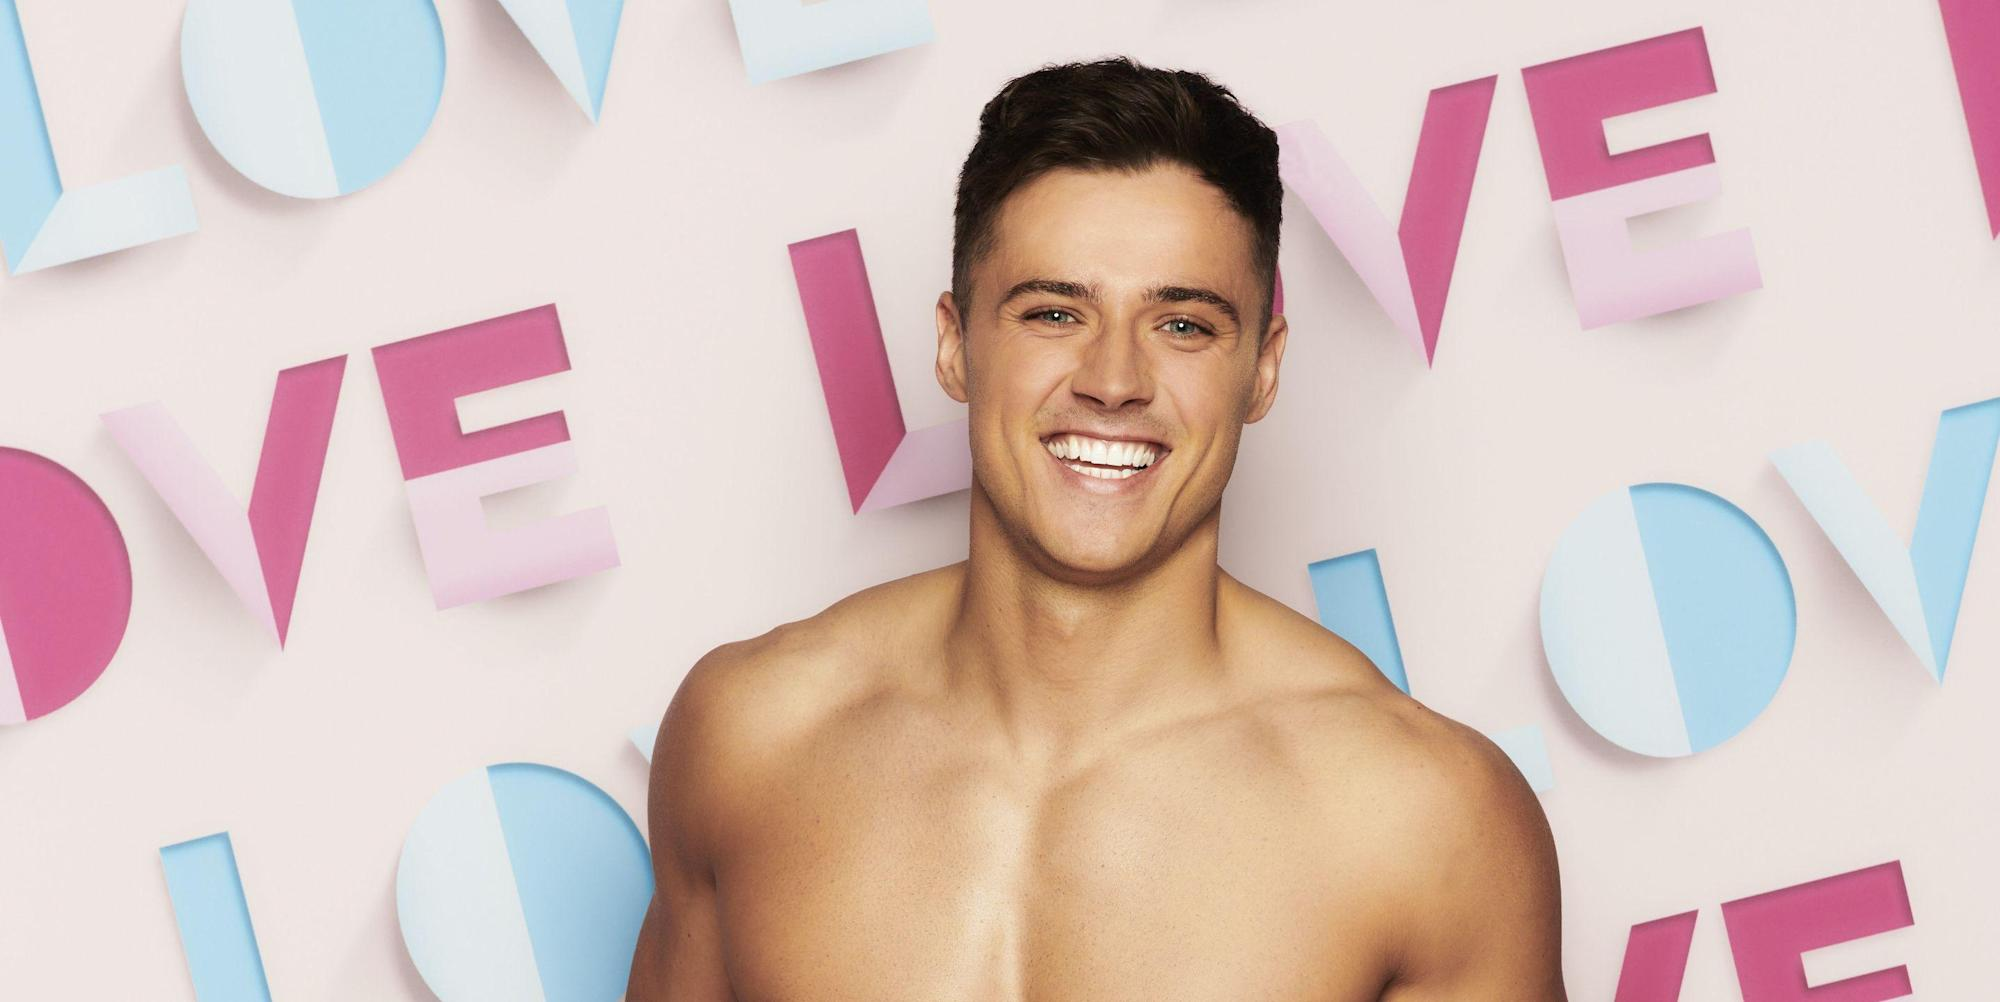 Brad from Love Island's long-lost sister obtained in contact after seeing him on the present